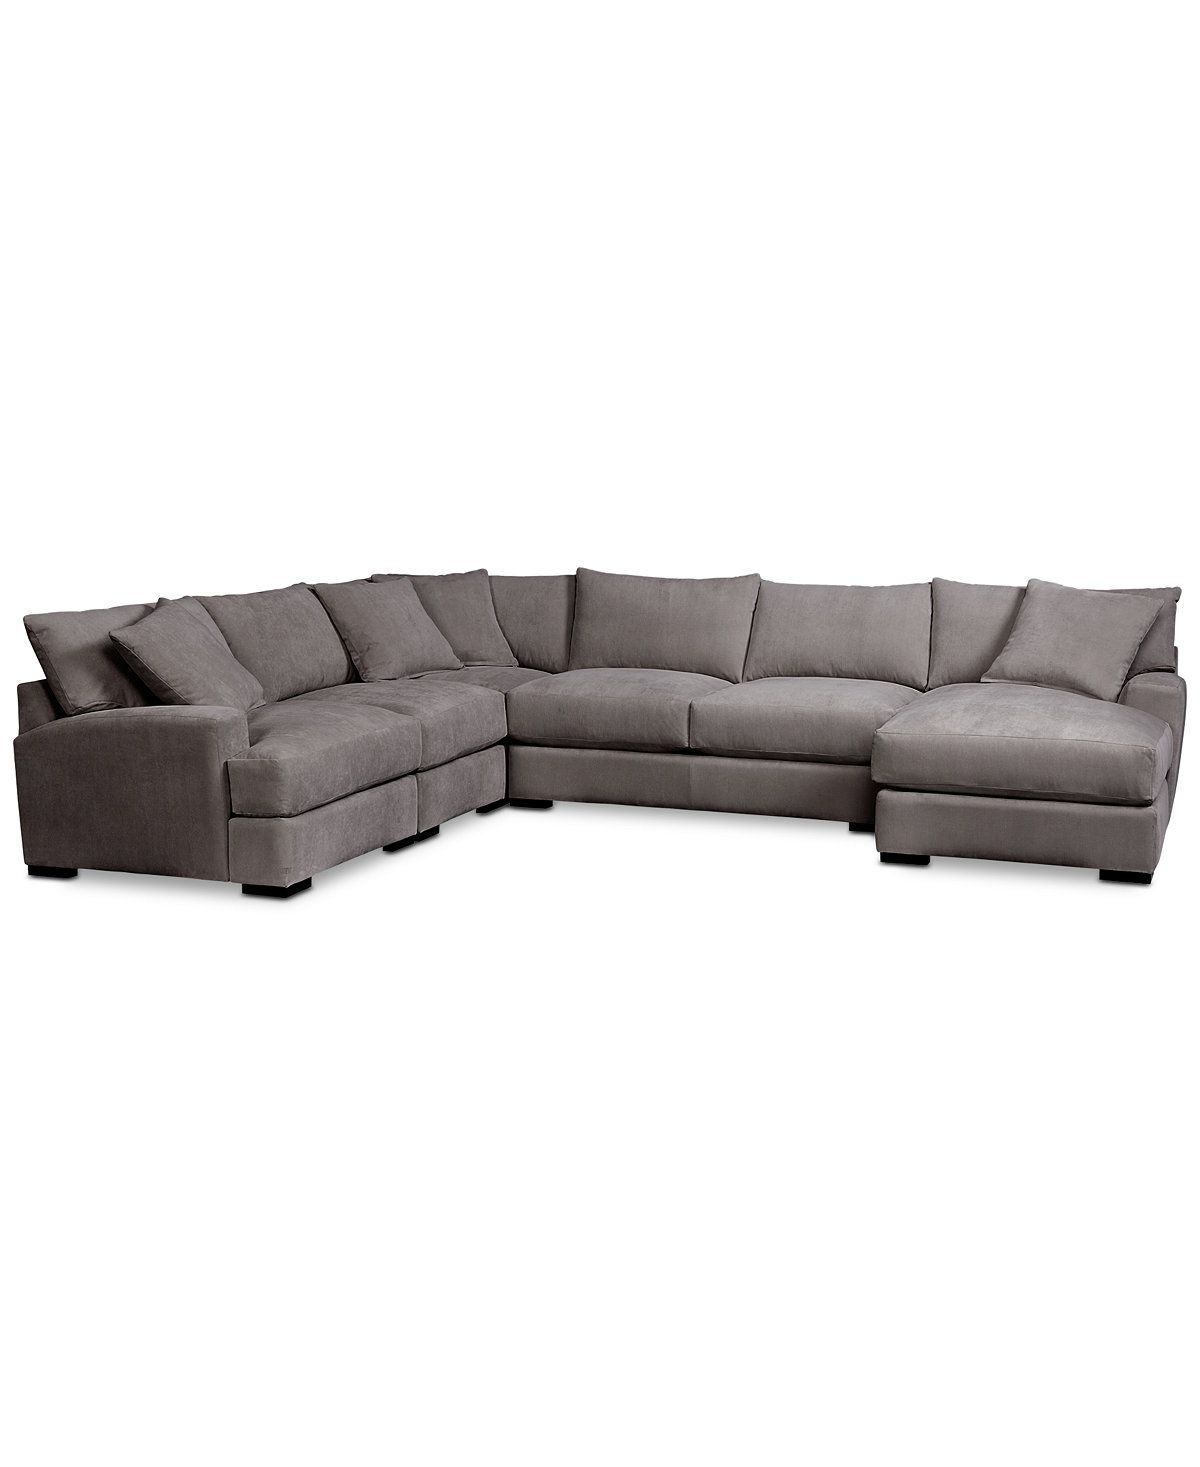 Rhyder 5Piece Sectional with Chaise Sectional Sofas Furniture